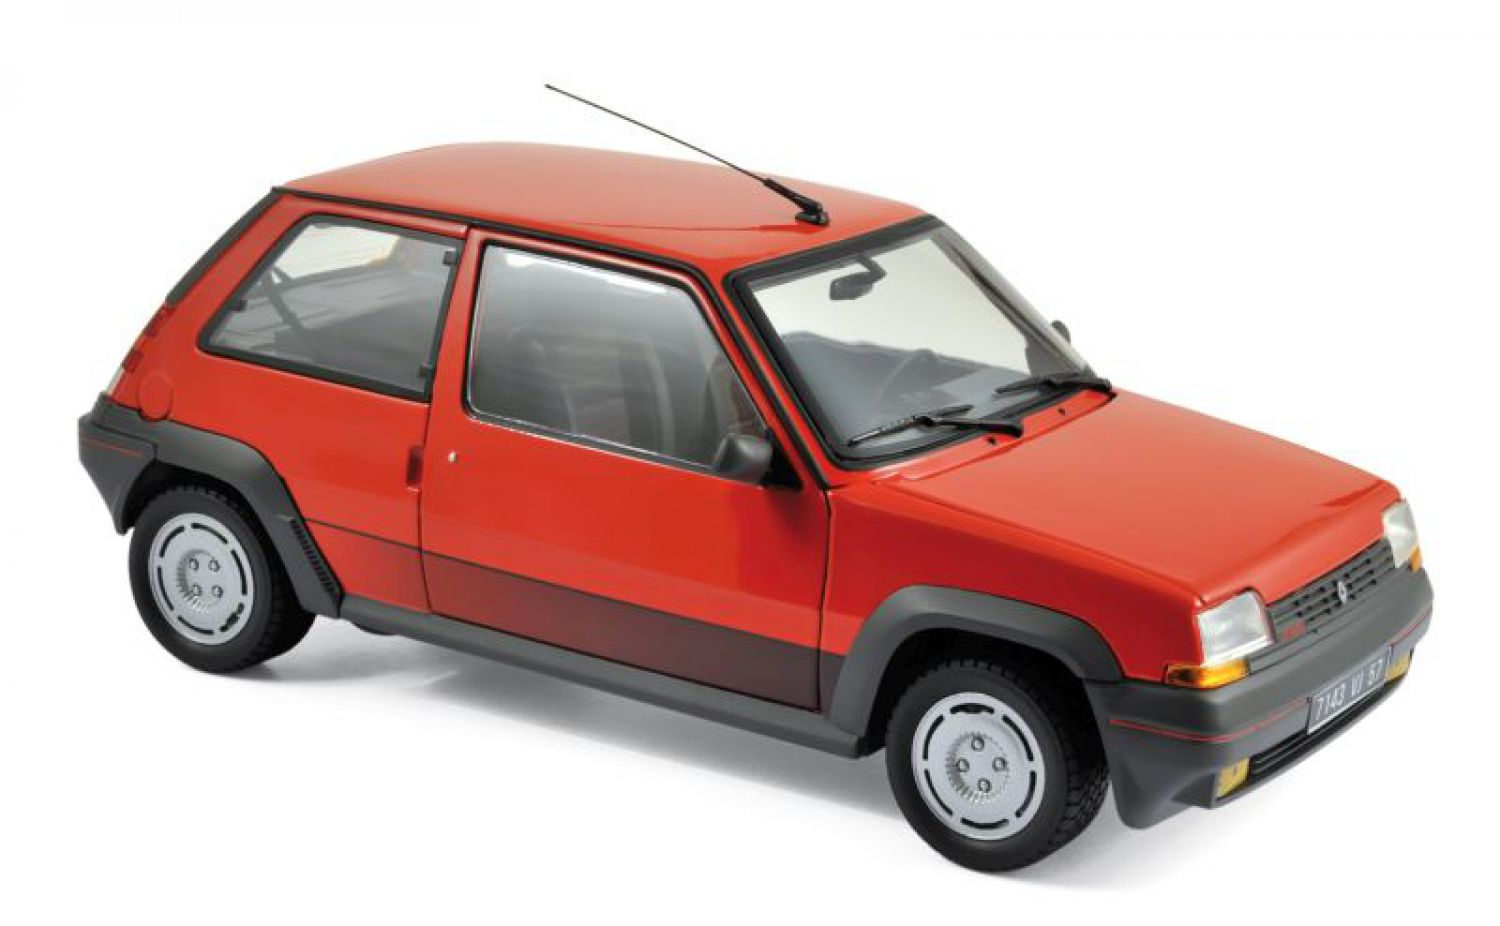 renault 5 supercinq gt turbo 1989 rouge mod le de voiture. Black Bedroom Furniture Sets. Home Design Ideas